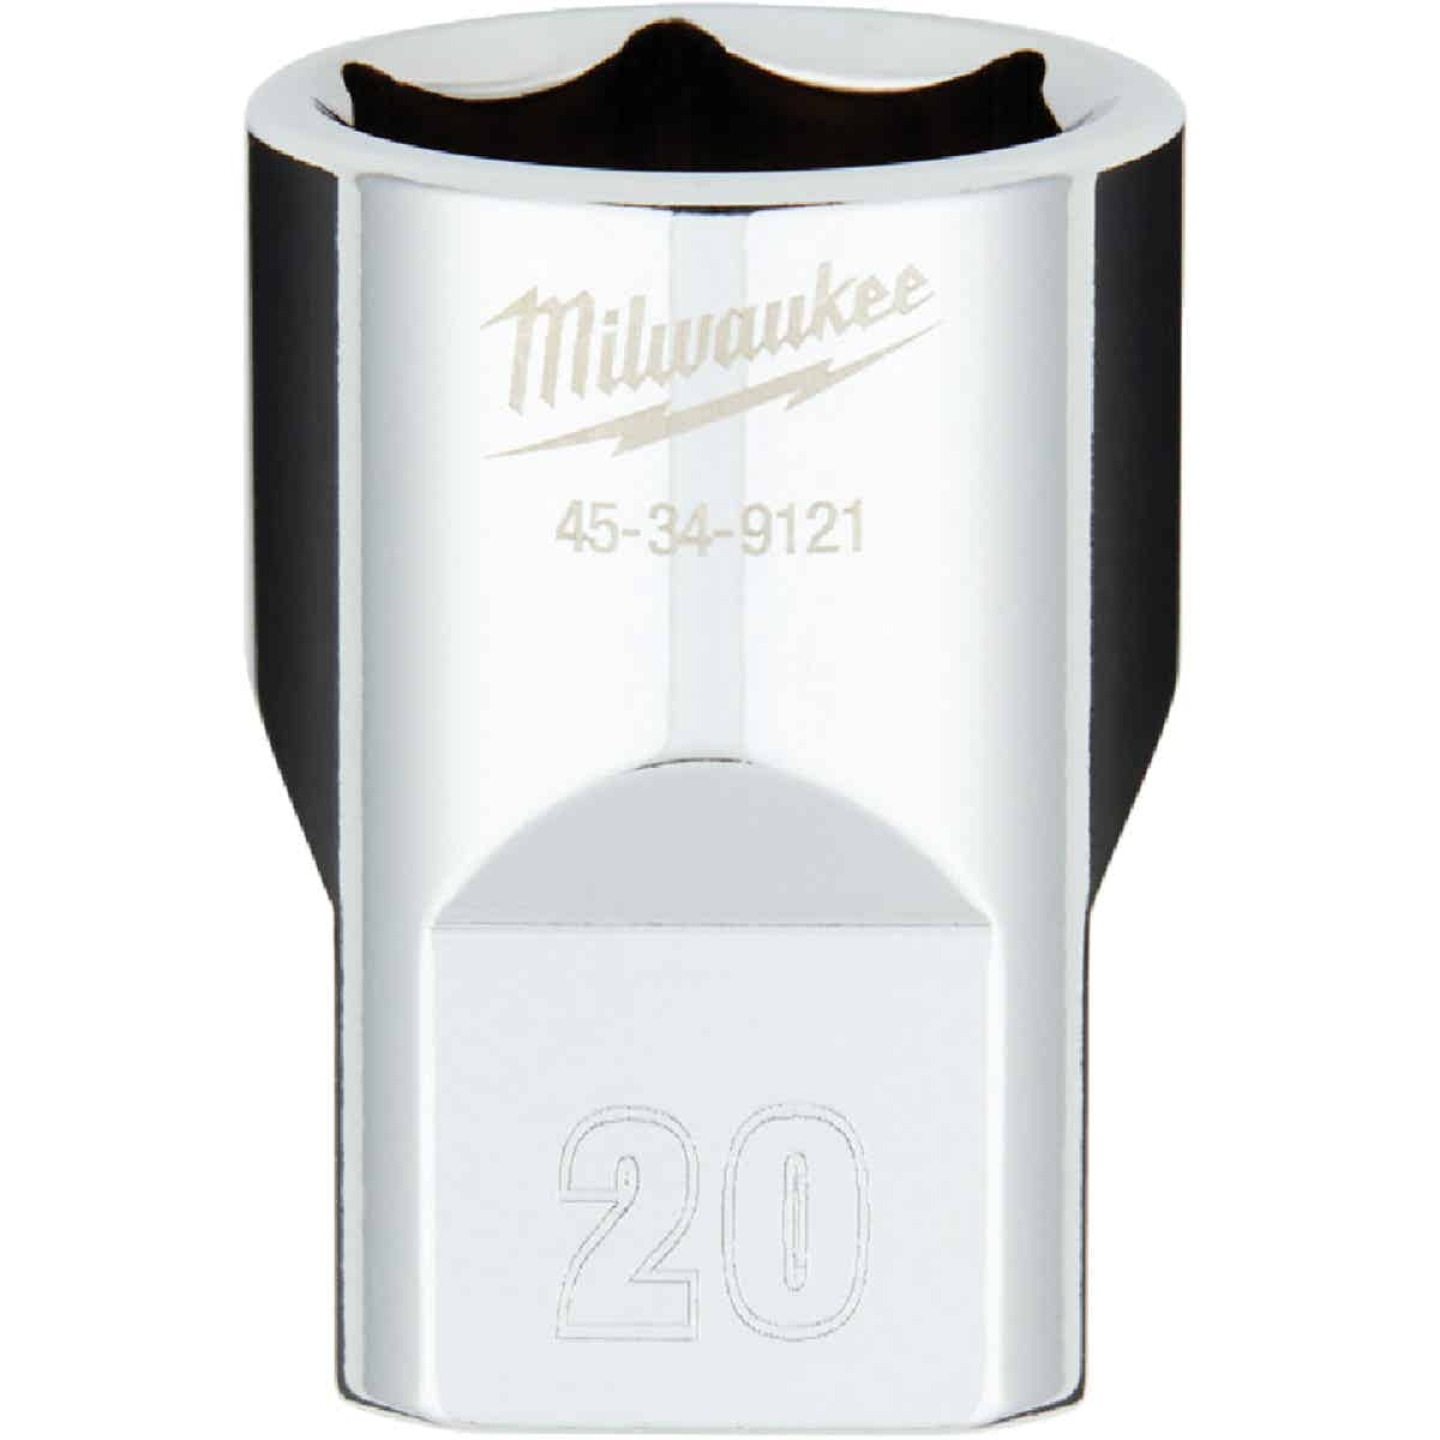 Milwaukee 1/2 In. Drive 20 mm 6-Point Shallow Metric Socket with FOUR FLAT Sides Image 1